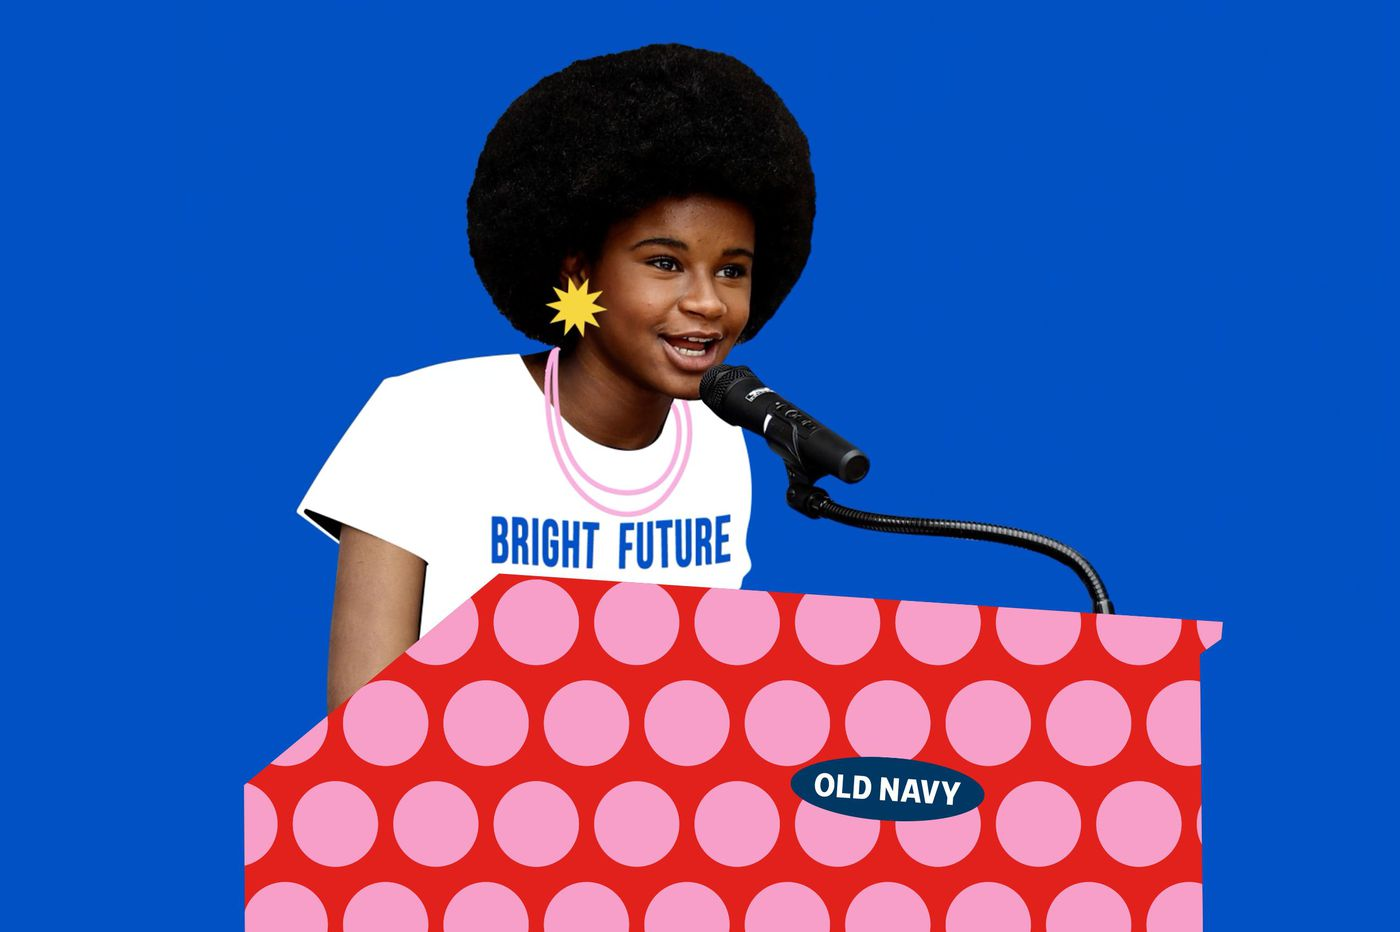 Philly-born activist Marley Dias is amplifying the voices of teenagers in an Old Navy ad campaign